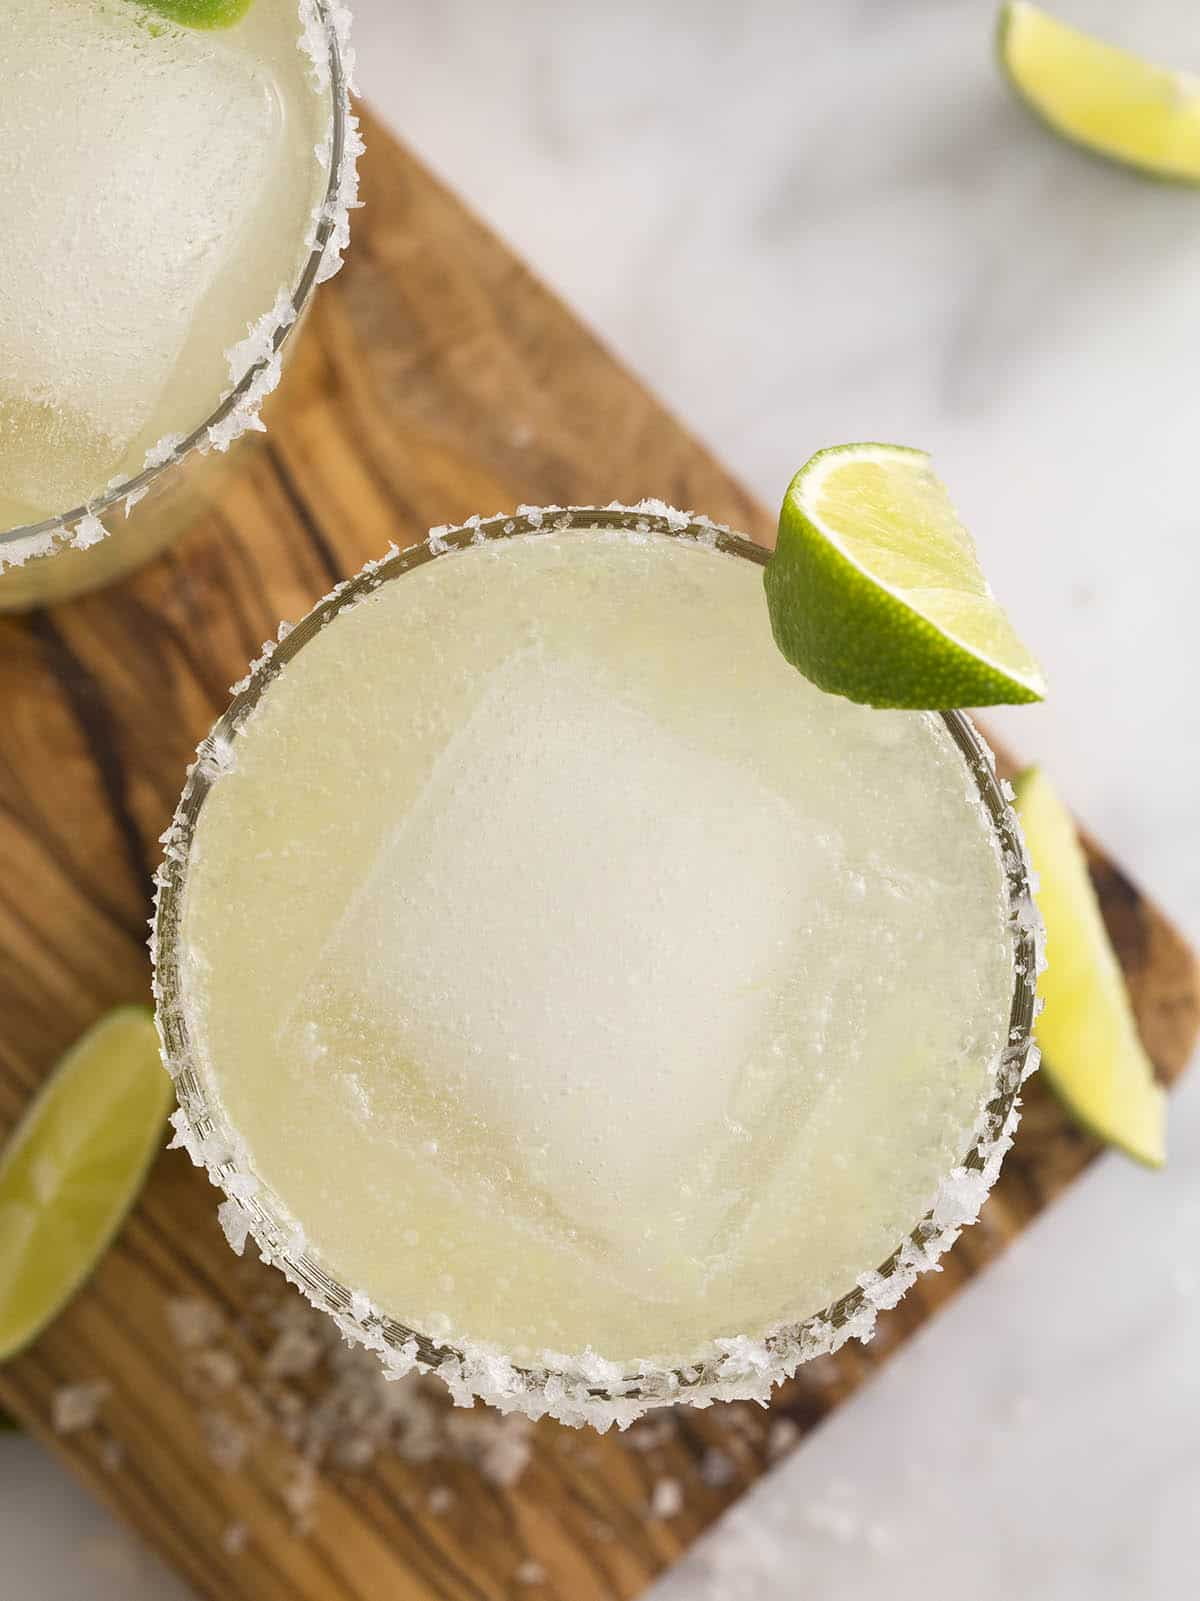 A top-down view of a margarita on a wooden cutting board